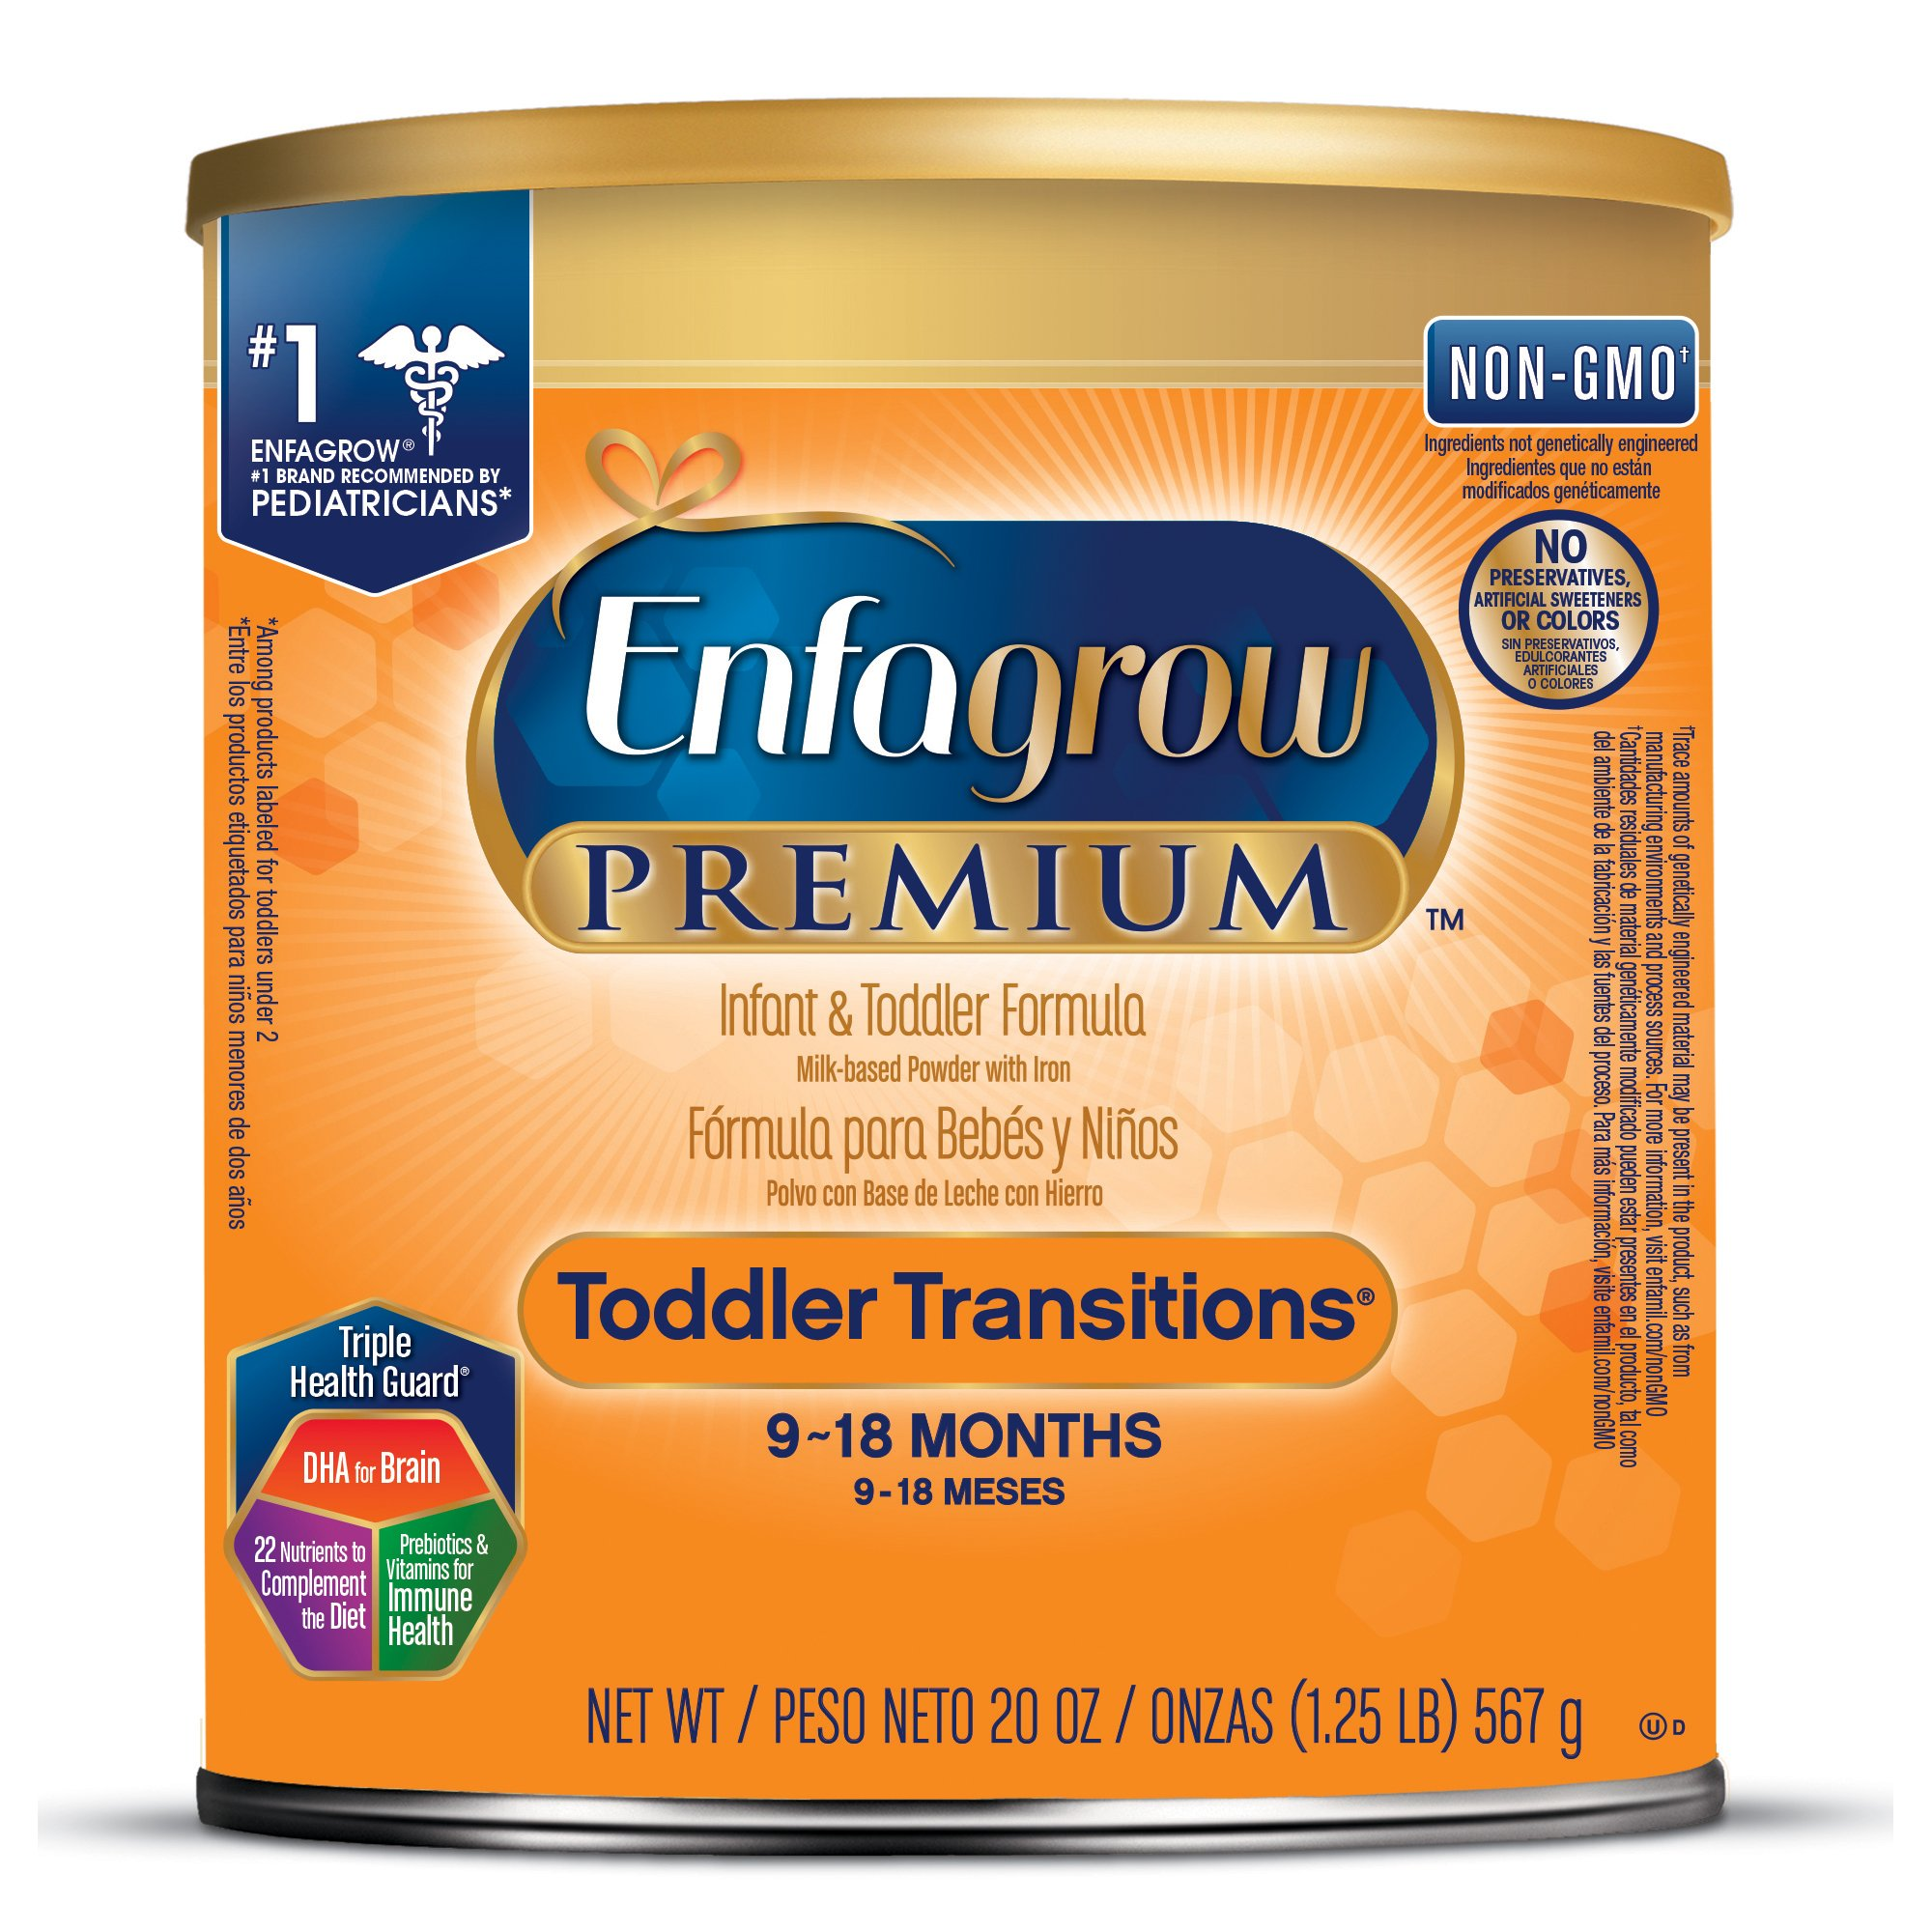 Enfagrow PREMIUM Non-GMO Toddler Transitions Formula - Powder can, 20 oz by Enfamil